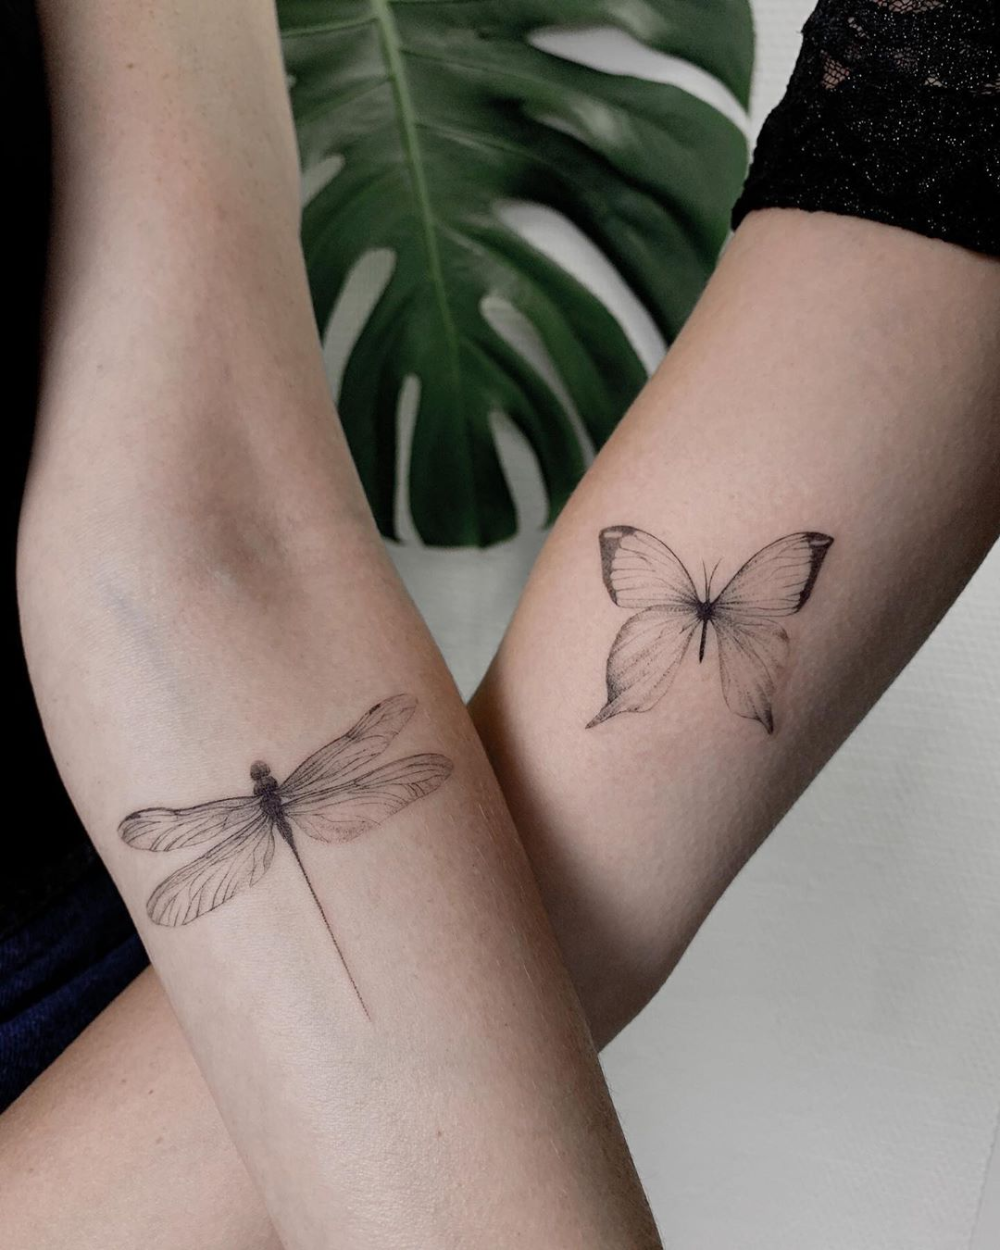 101 Dragonfly Tattoo Designs Best Rated Designs In 2020 Next Luxury In 2020 Dragonfly Tattoo Dragonfly Tattoo Design Foot Tattoos